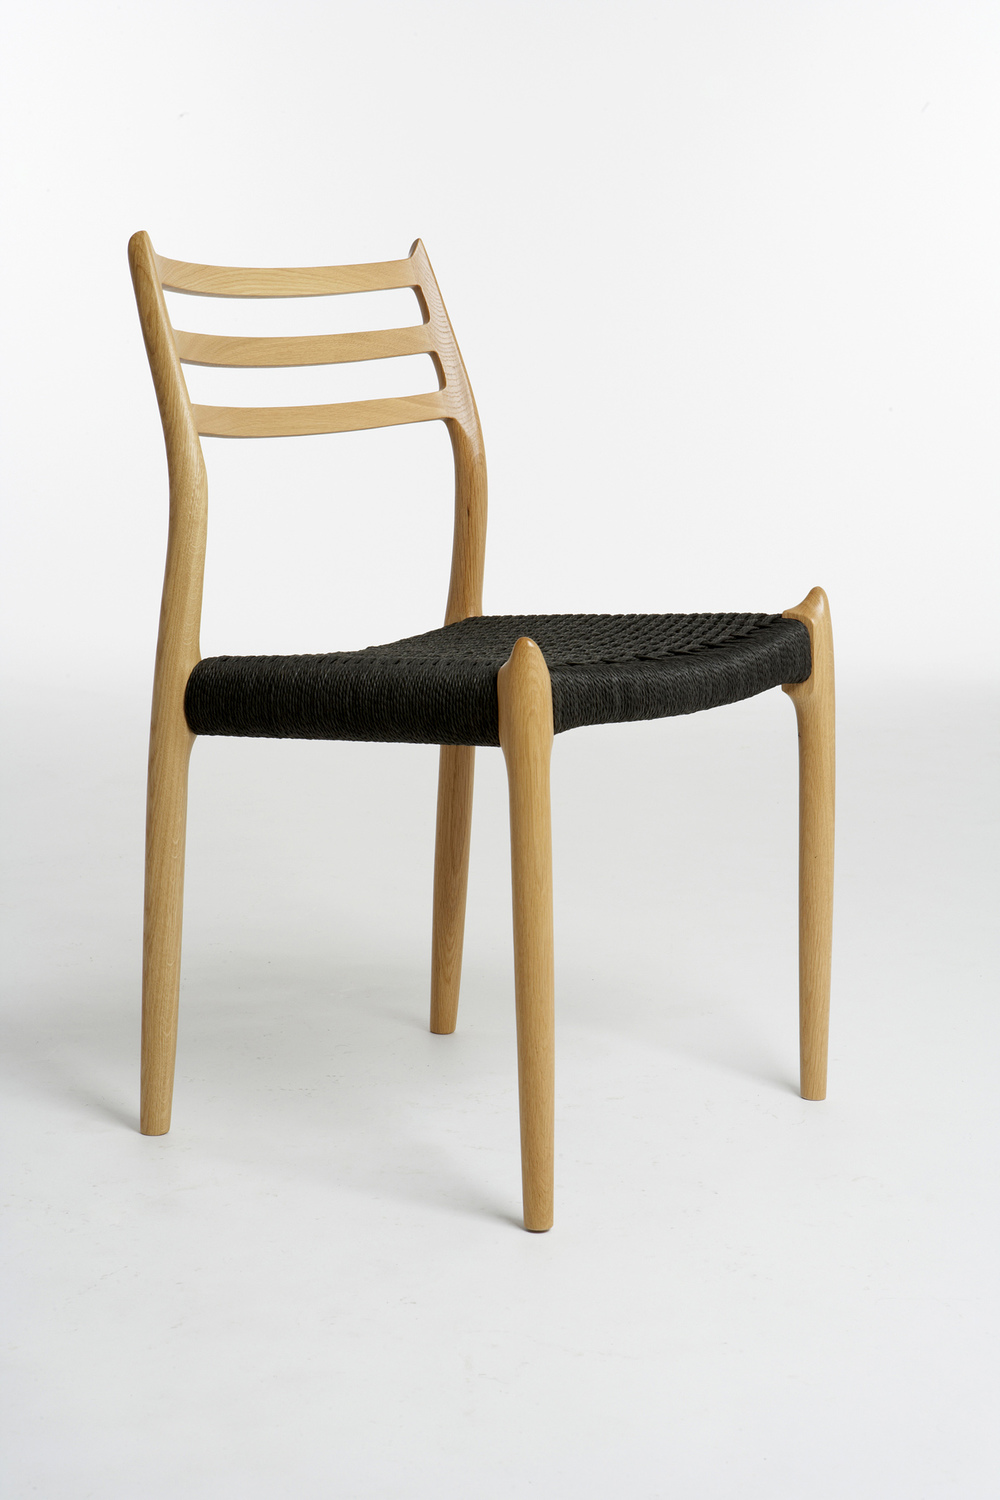 N O Moller 1962 Dining Chair